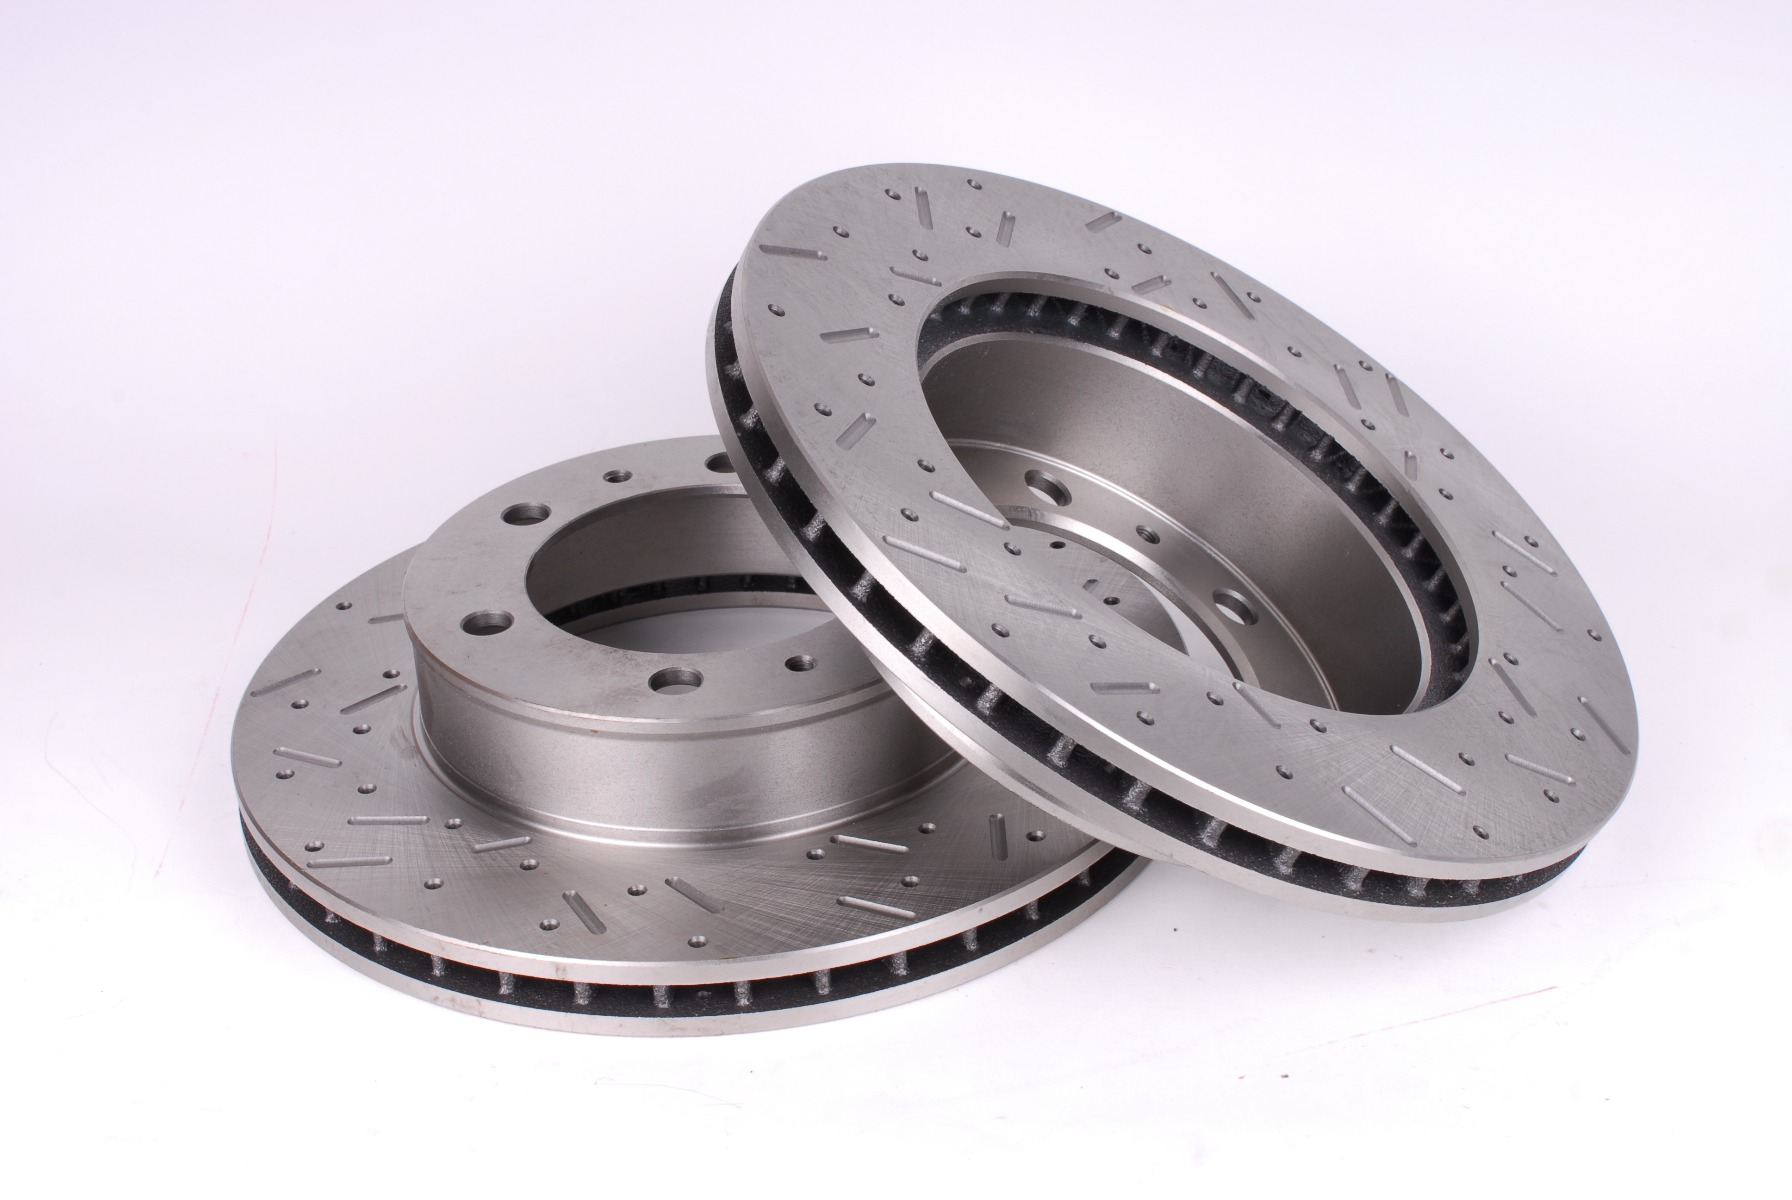 VMN offers disc brakes and brake rotors you can purchase together with brake pads to ensure your breaking system is in a top-shape.